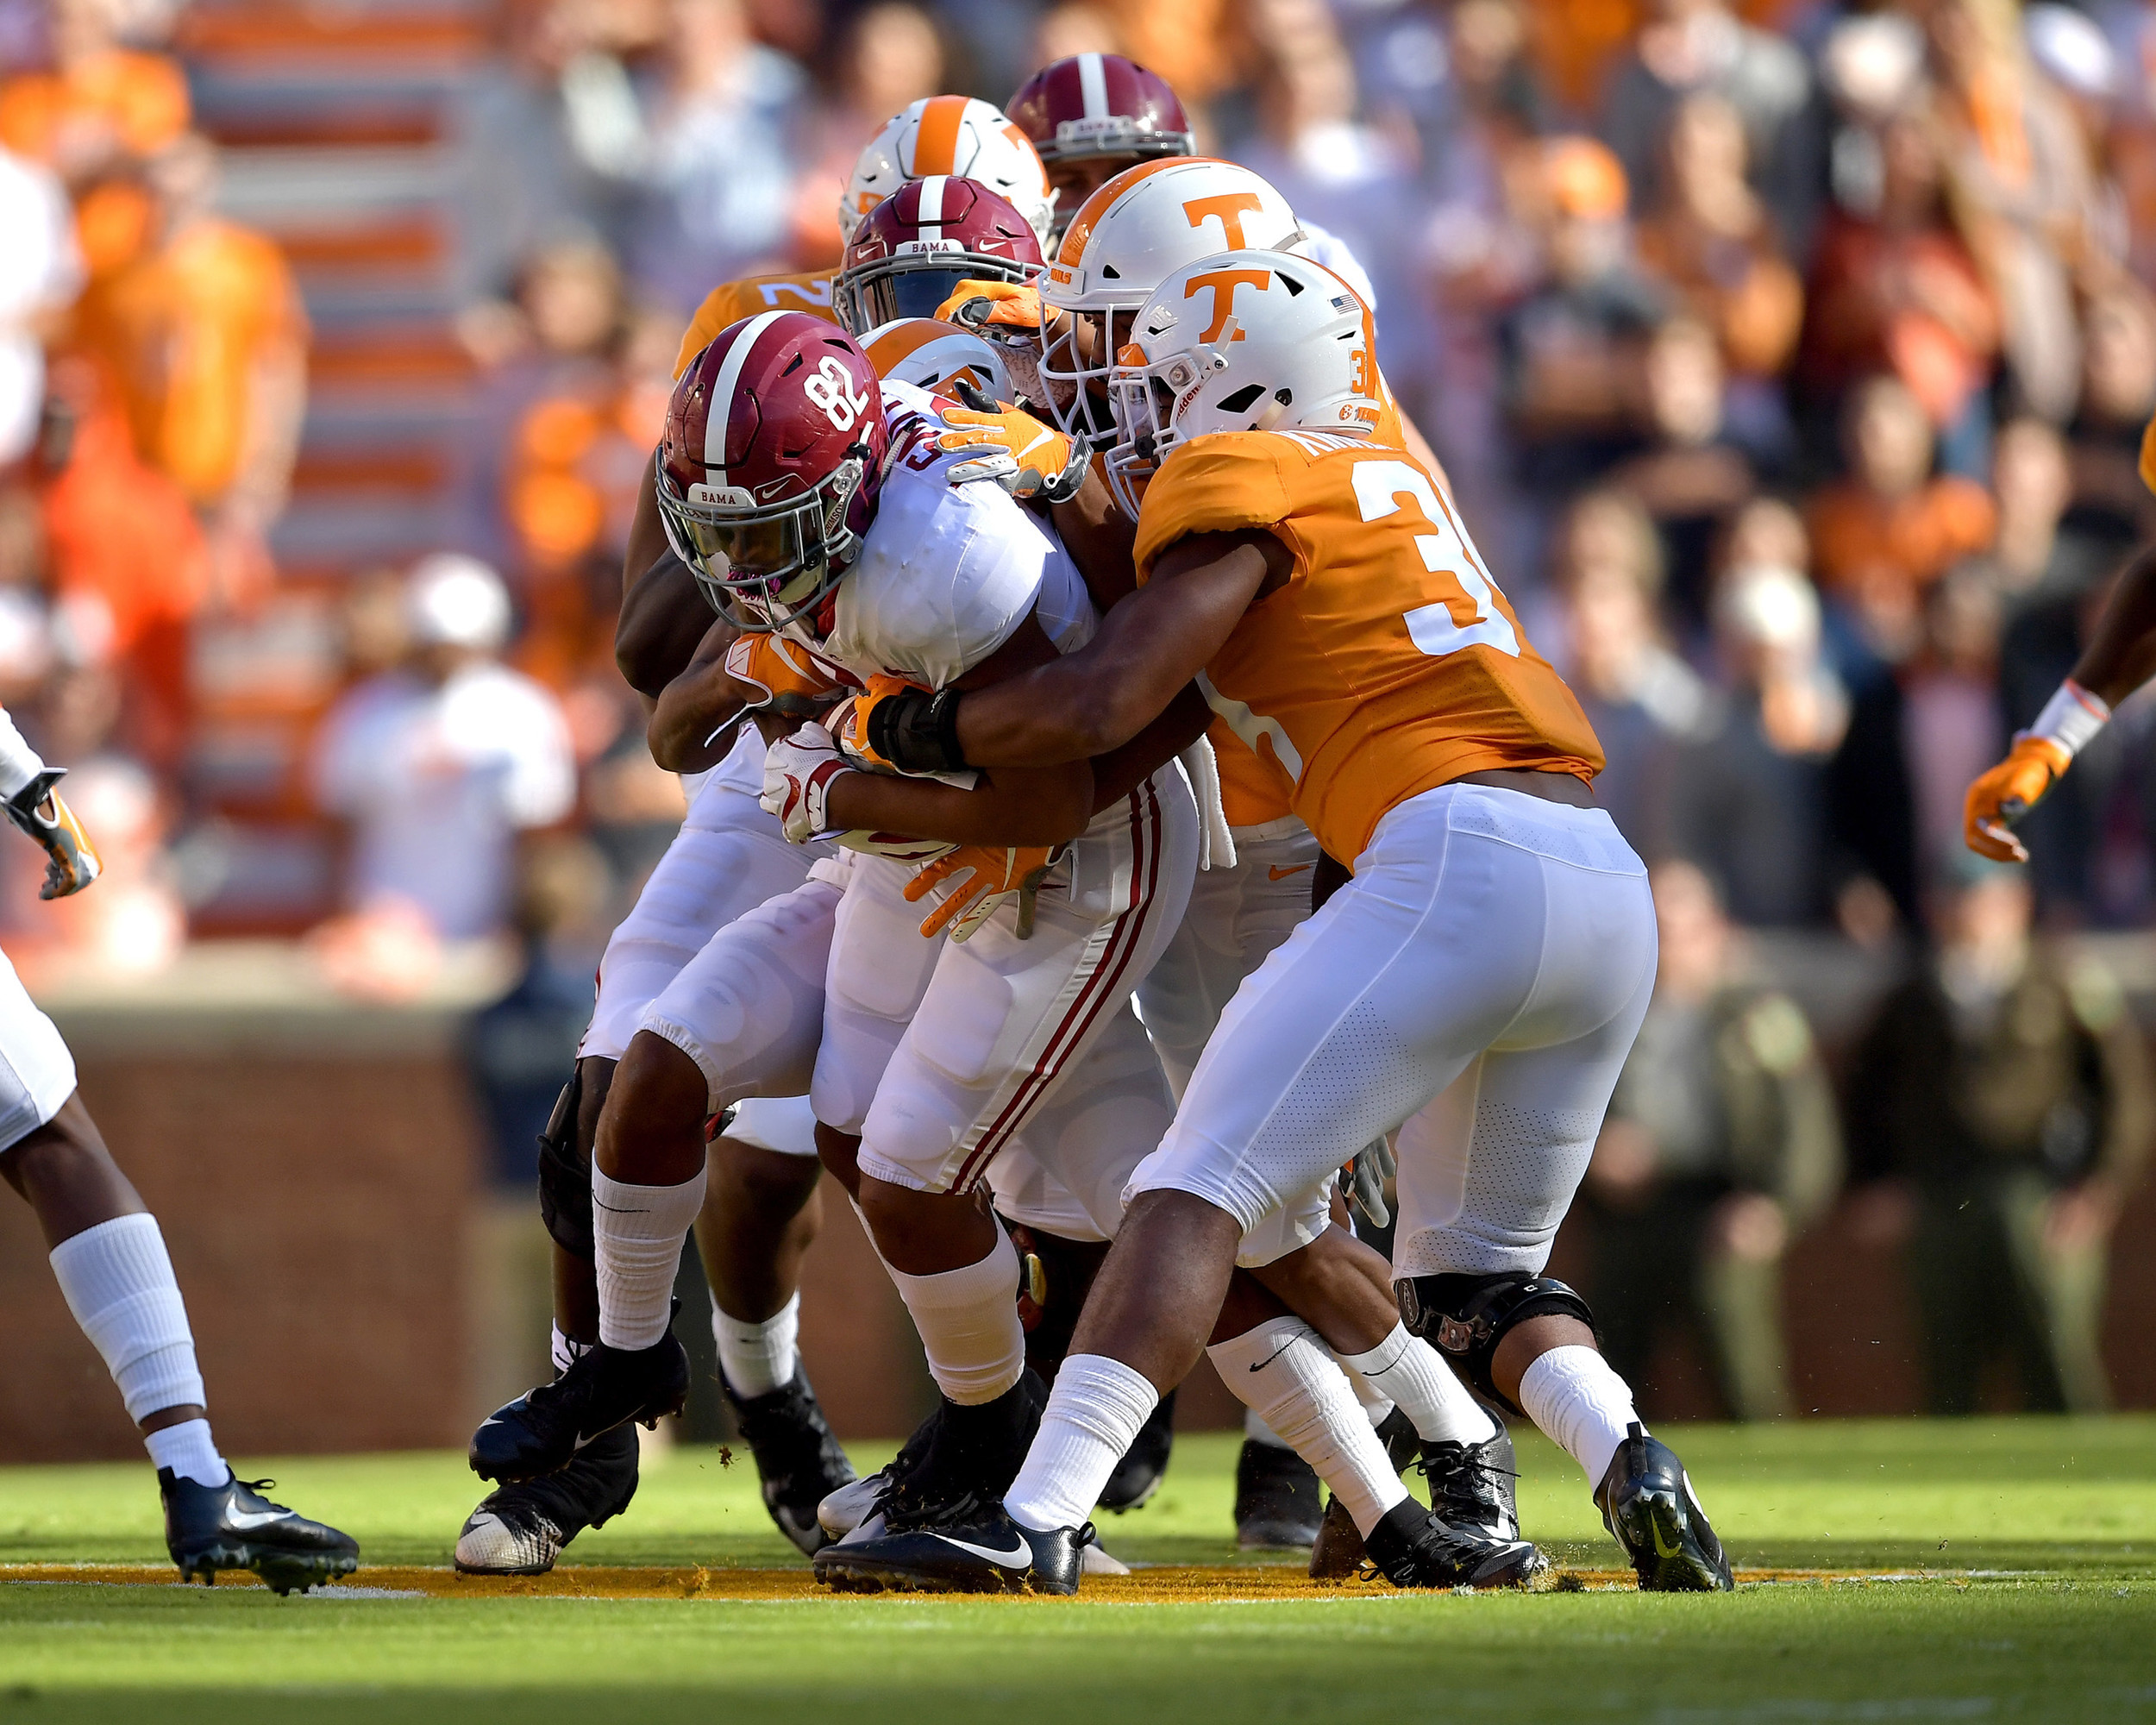 Alabama Crimson Tide tight end Irv Smith Jr. (82) works his way through the Tennessee Volunteers during the first half of the NCAA football game on Saturday, Oct. 20, 2018, at Neyland Stadium in Knoxville. Tenn. Alabama wins 58-21. (Photo by Lee Walls)